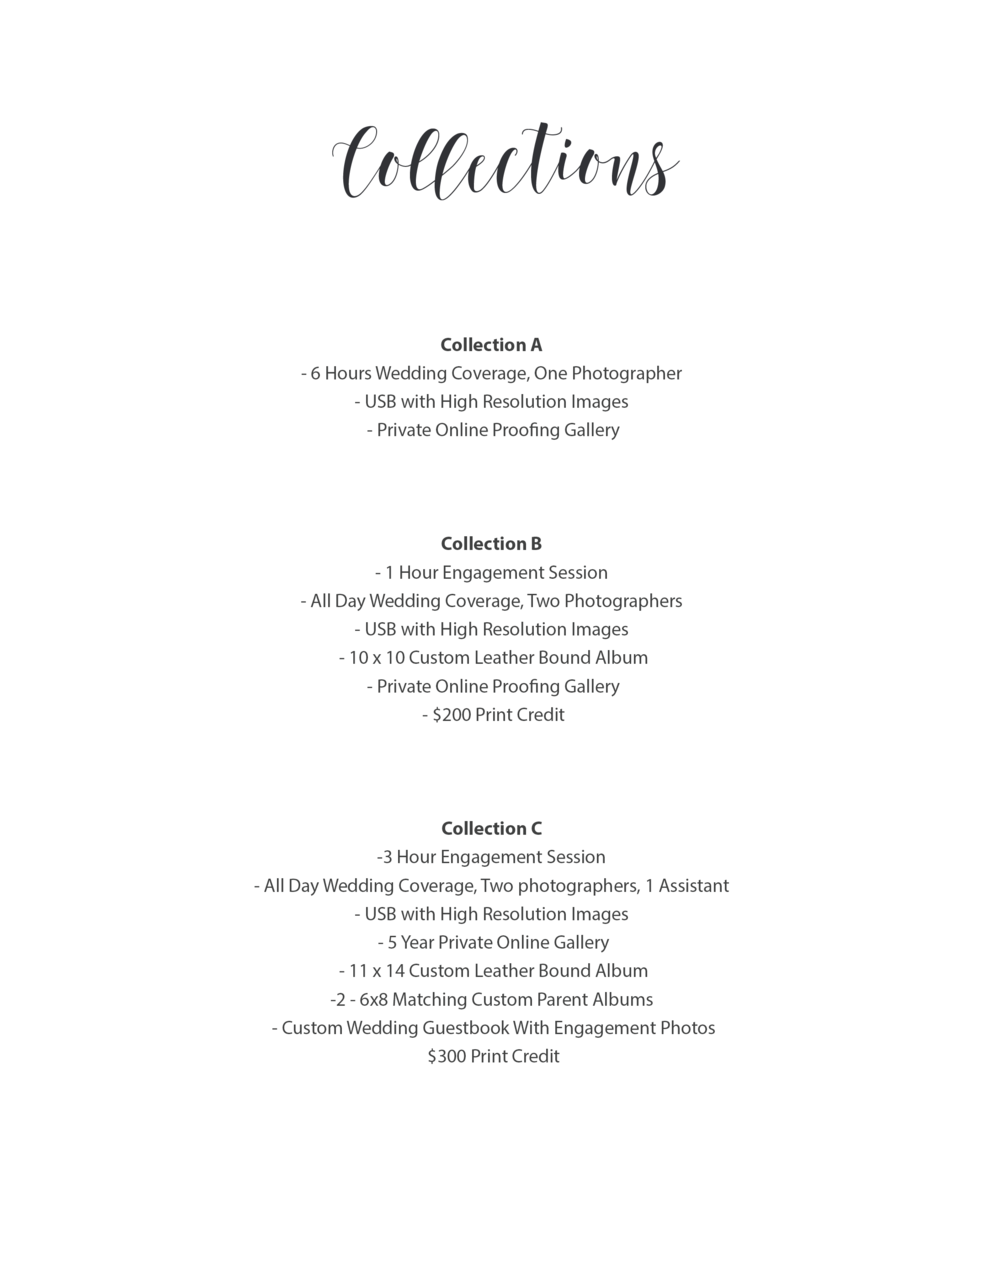 Wedding Collections 2018 - Ayeris Weddings .png